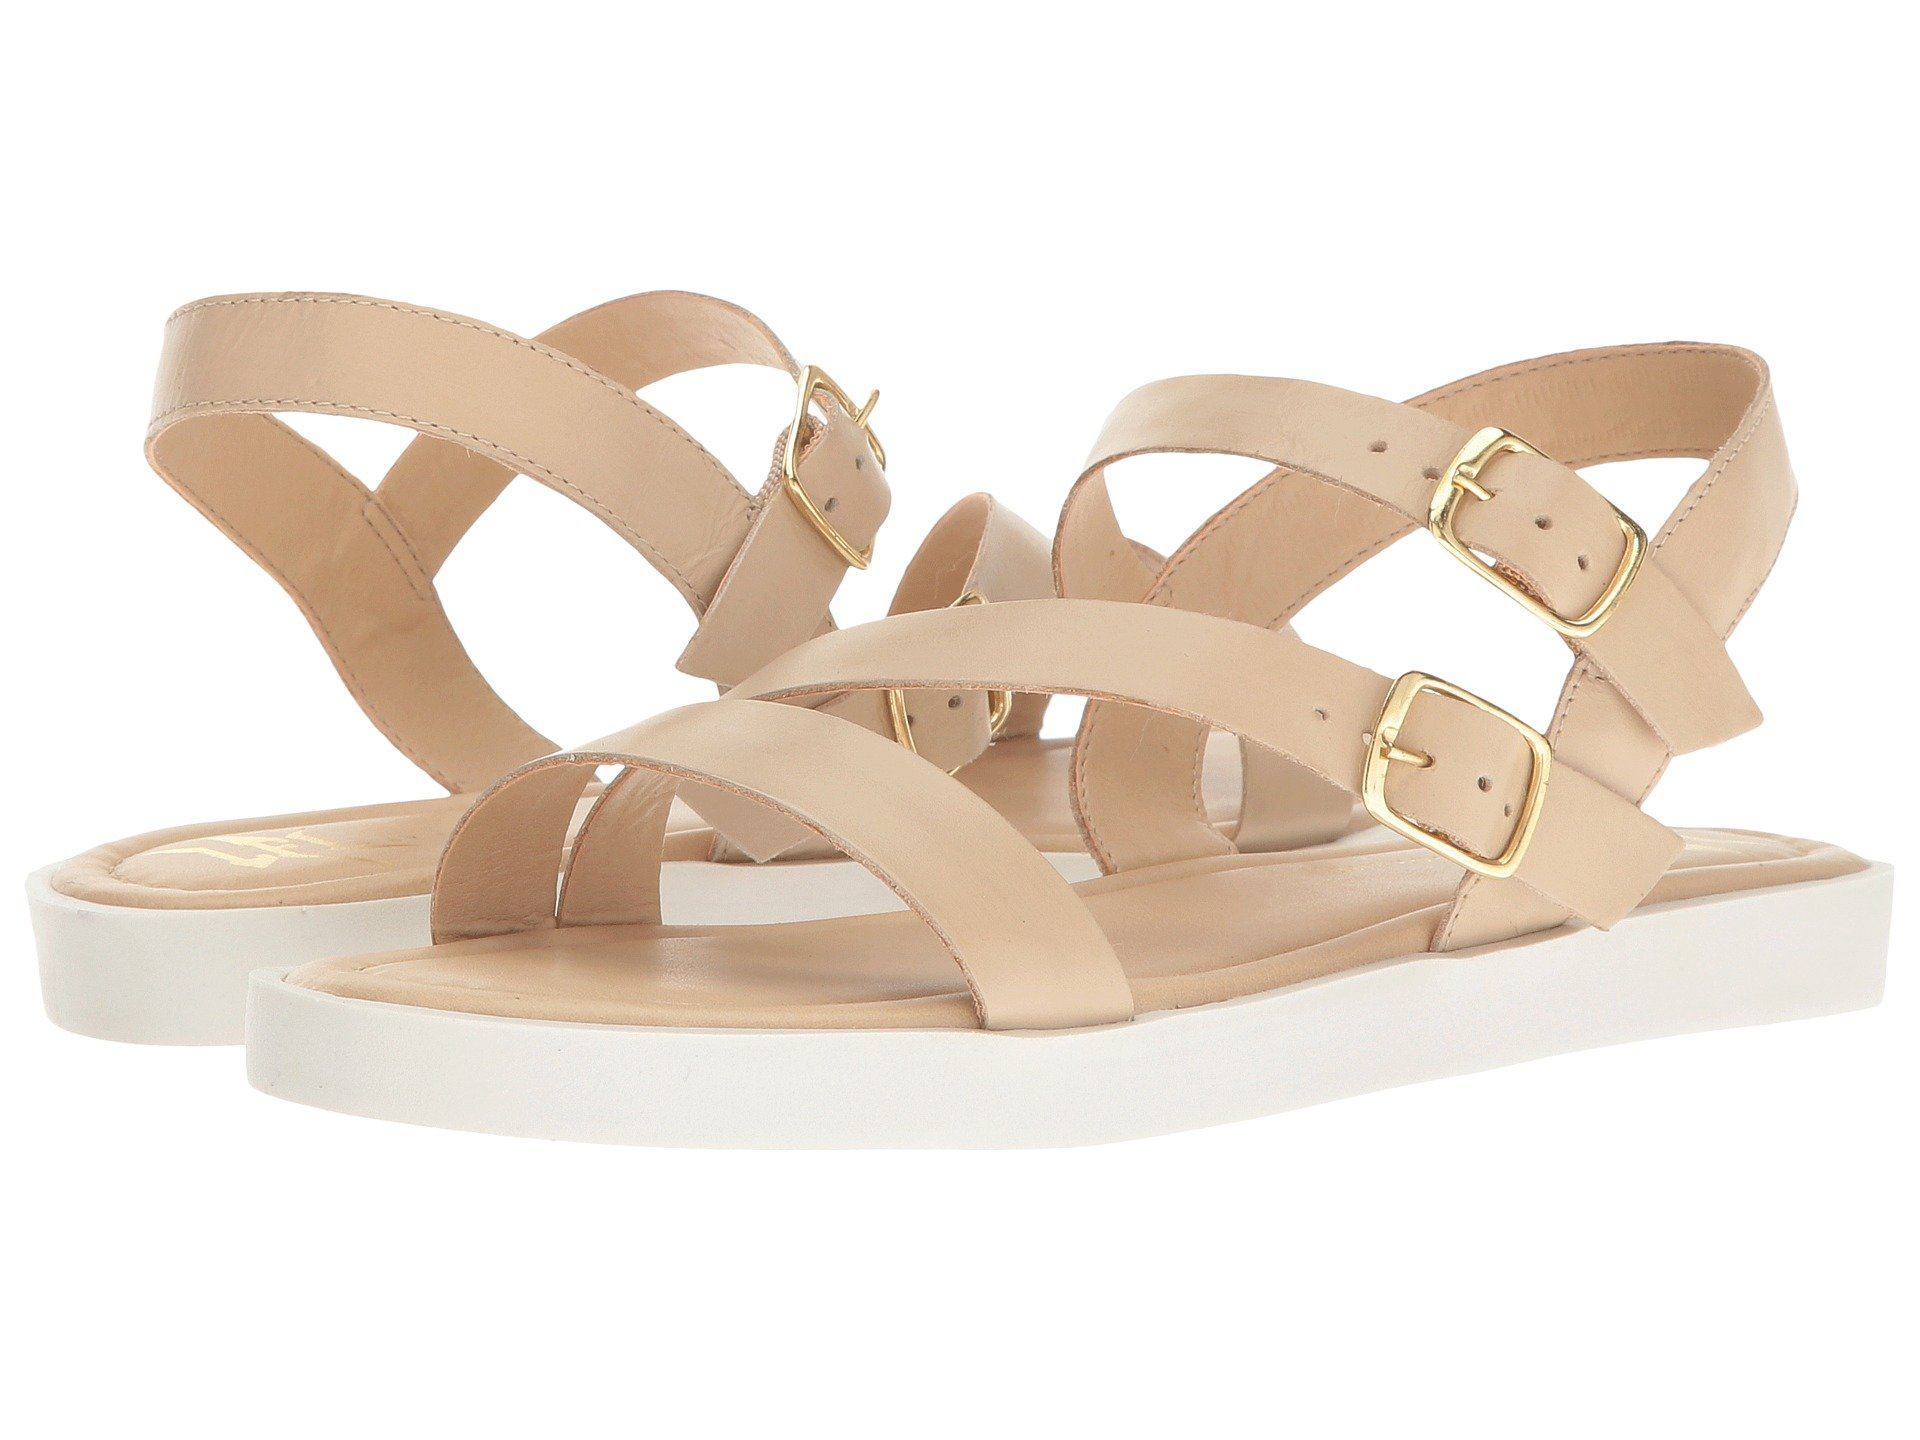 LFL BY LUST FOR LIFE Joker, Nude Leather